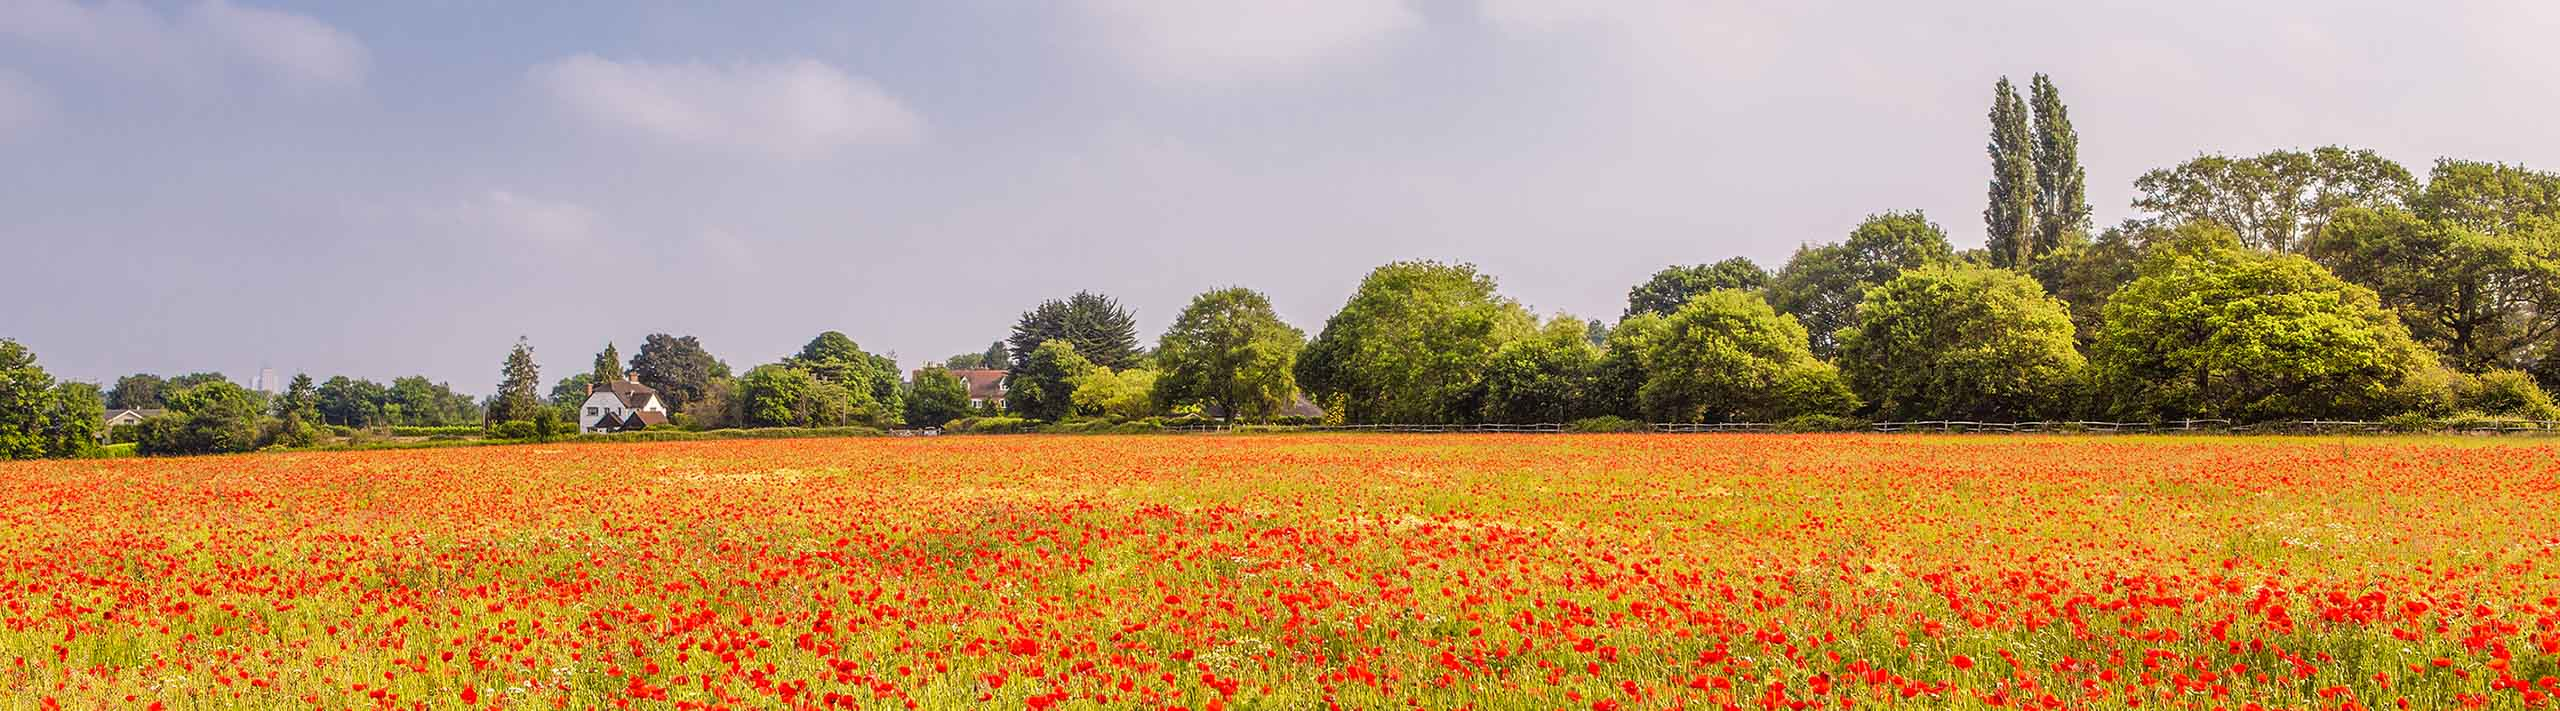 Landscape picture of field of red poppy flowers